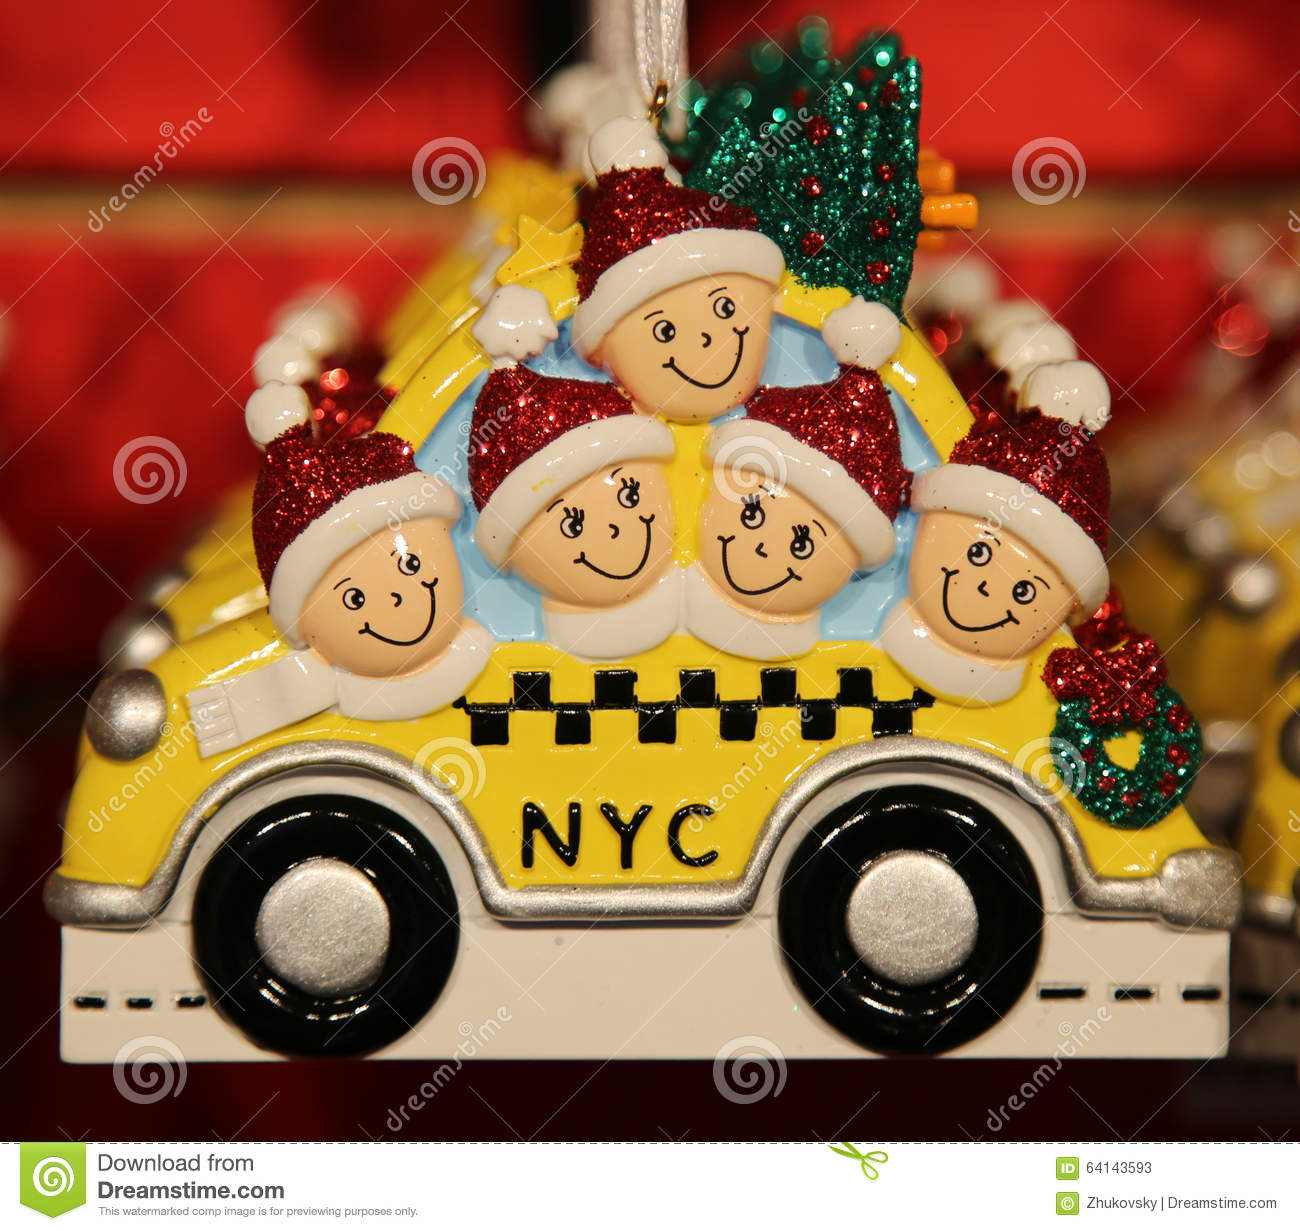 Themed christmas ornaments - New York City Themed Christmas Ornaments